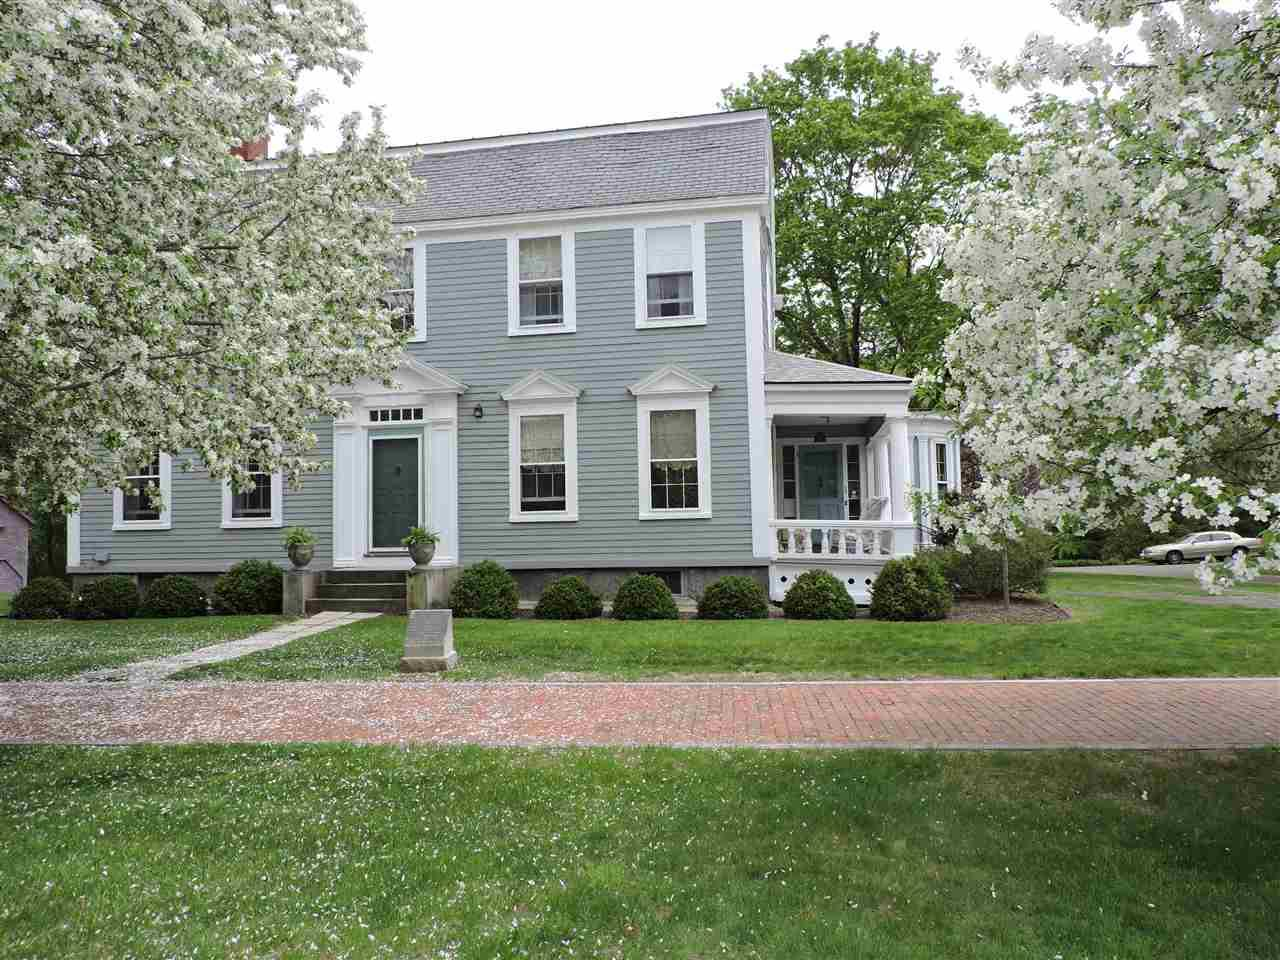 276 n main st concord nh mls 4632865 coldwell banker